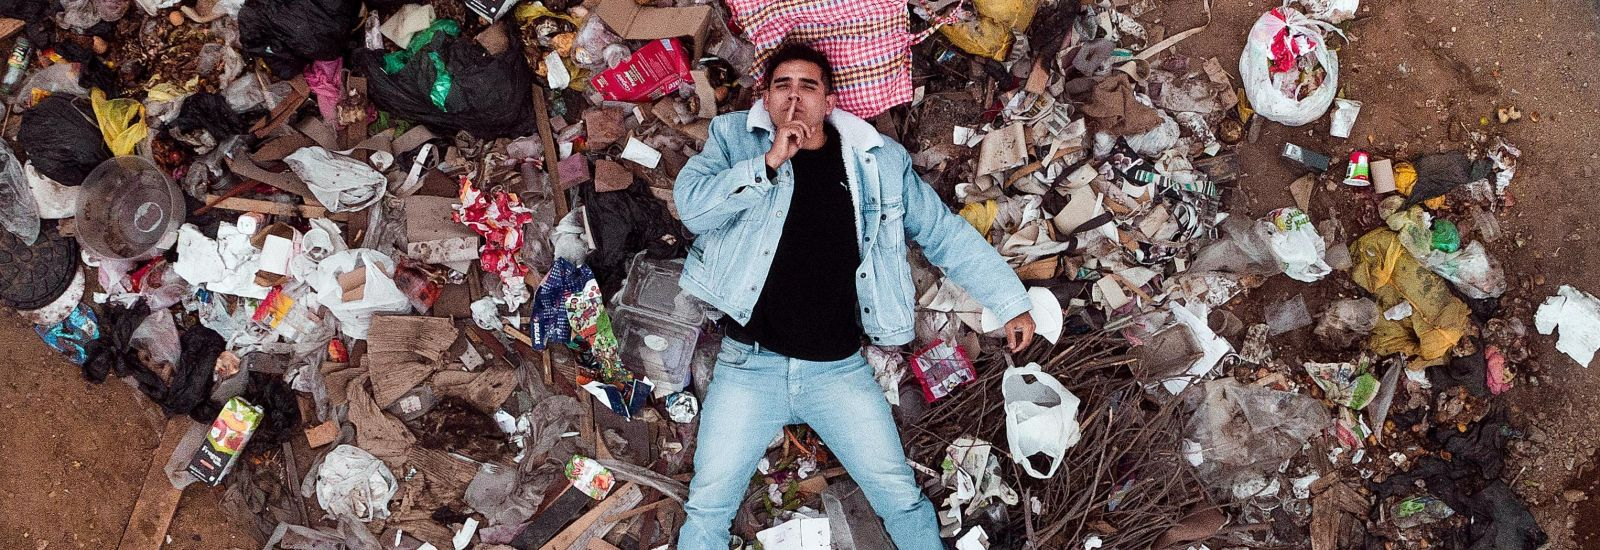 Overhead photo of man lying on a pile of rubbish